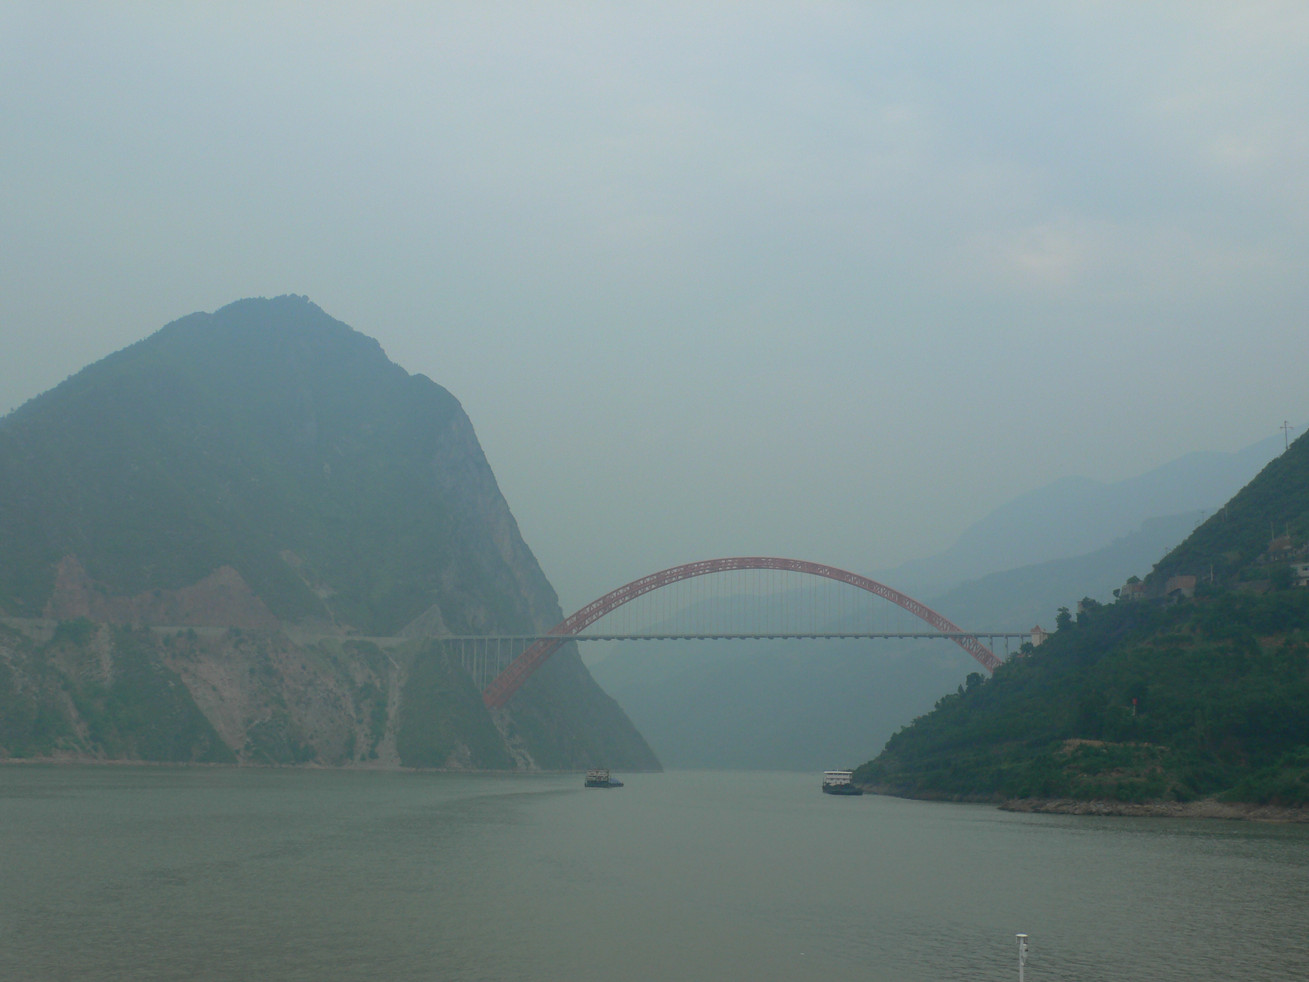 The Red Bridge at Wushan, striking for its architecture.